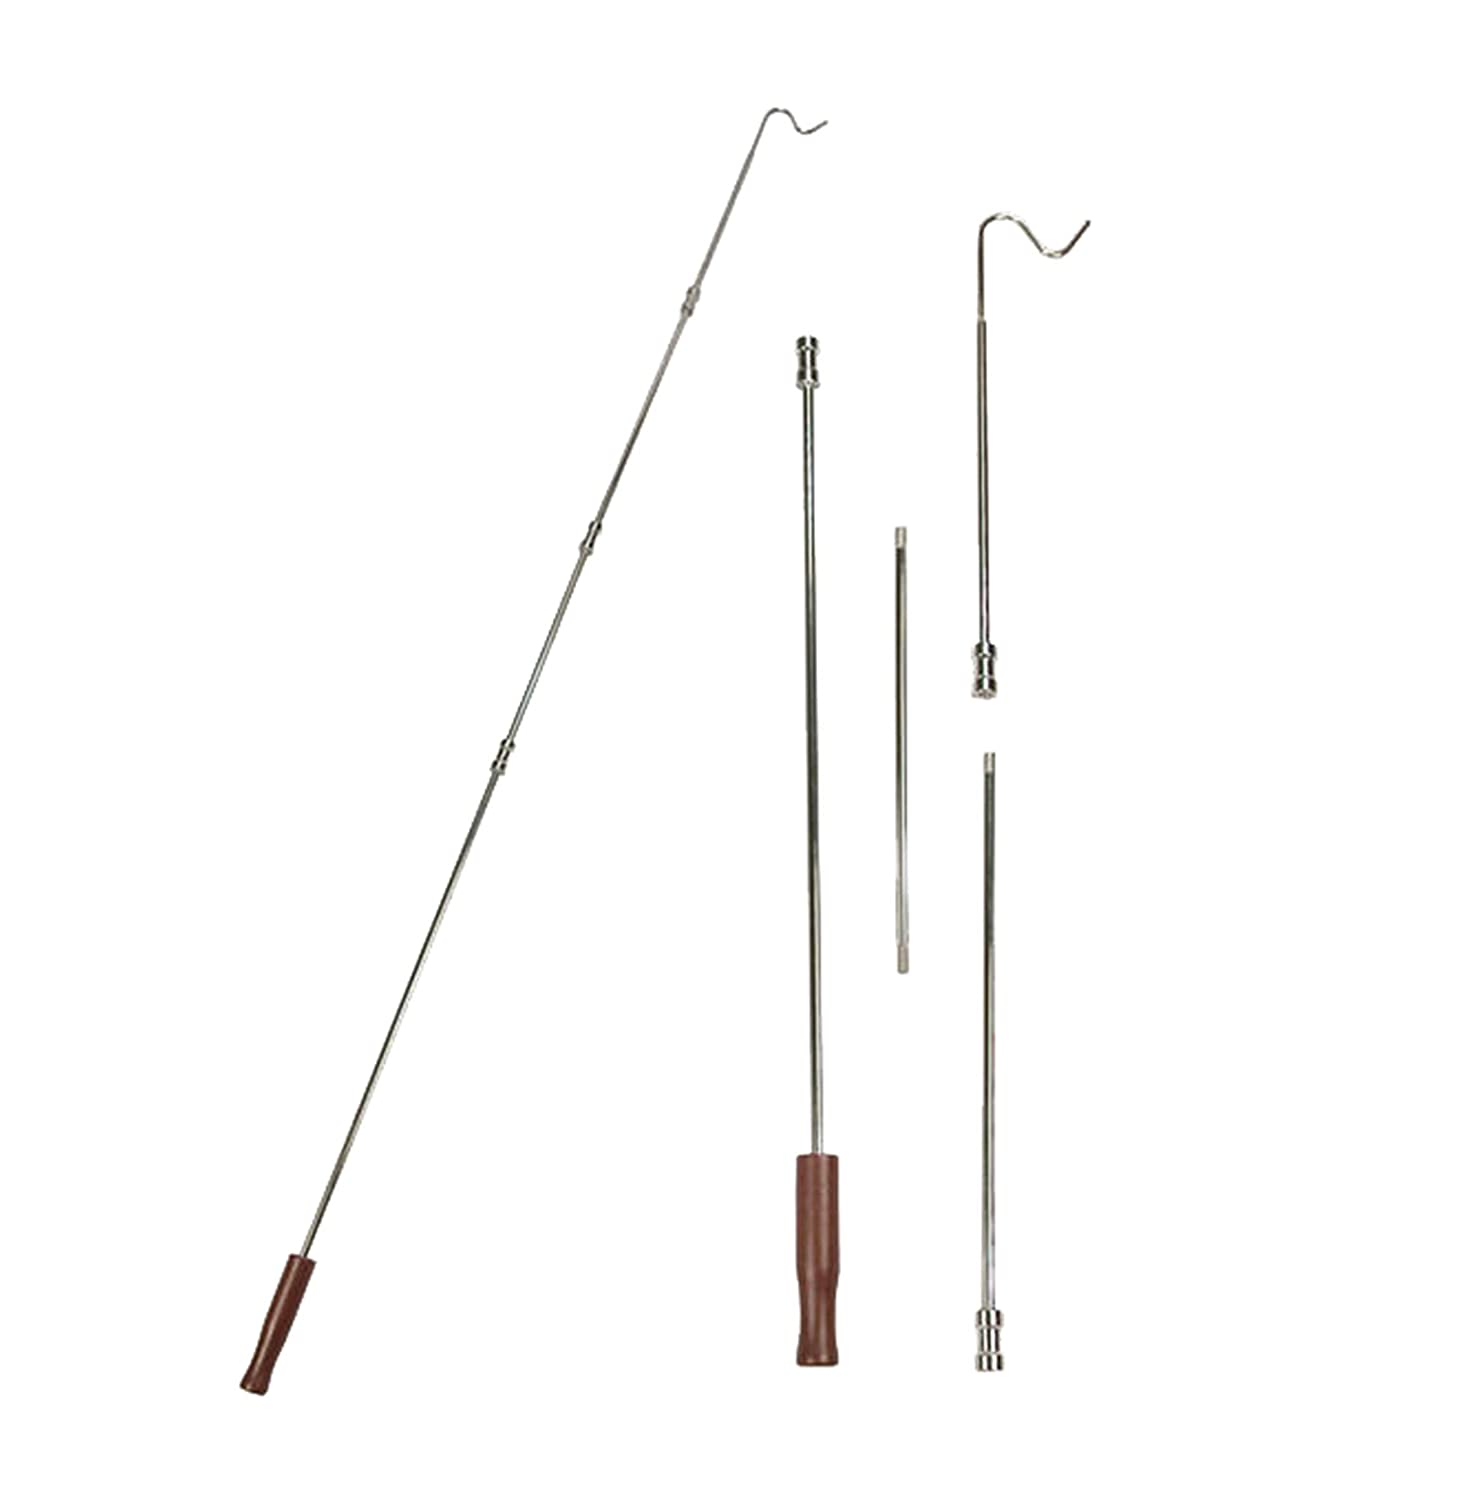 Hanger Retriever With Wood Handle. 1 Two Piece Hanger Reach Pole